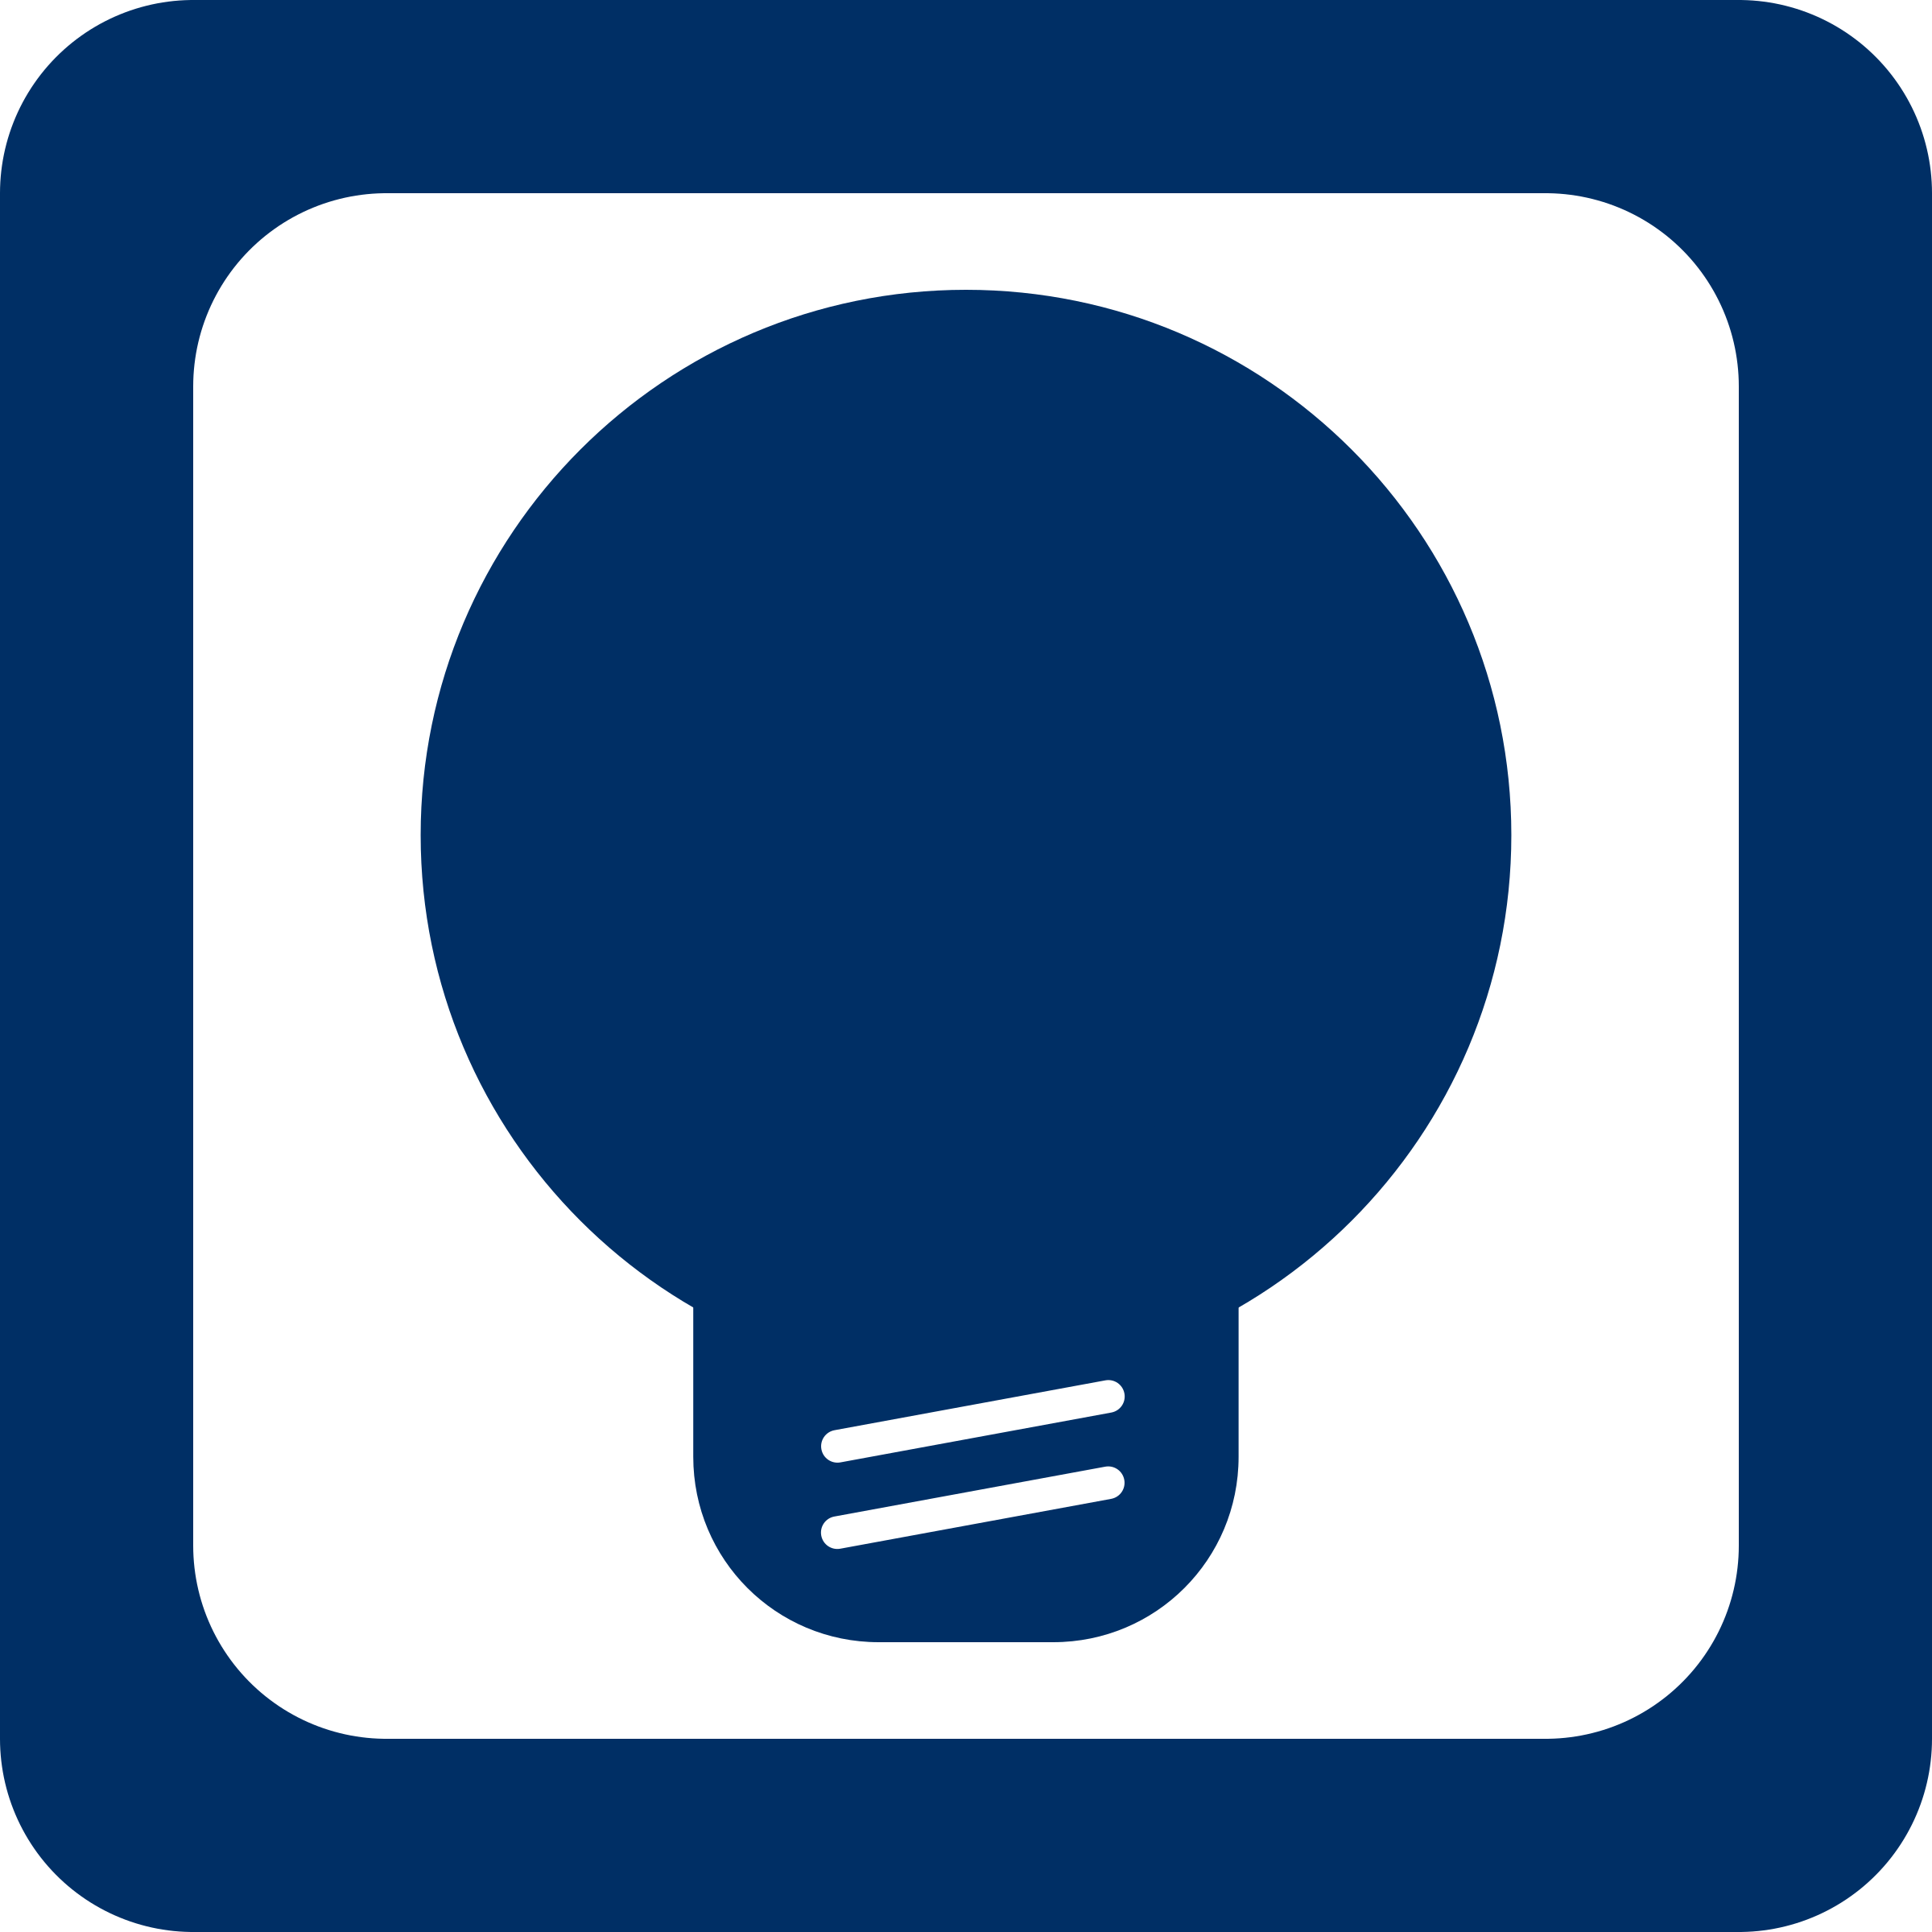 Blue Bulb Icon by LeonH